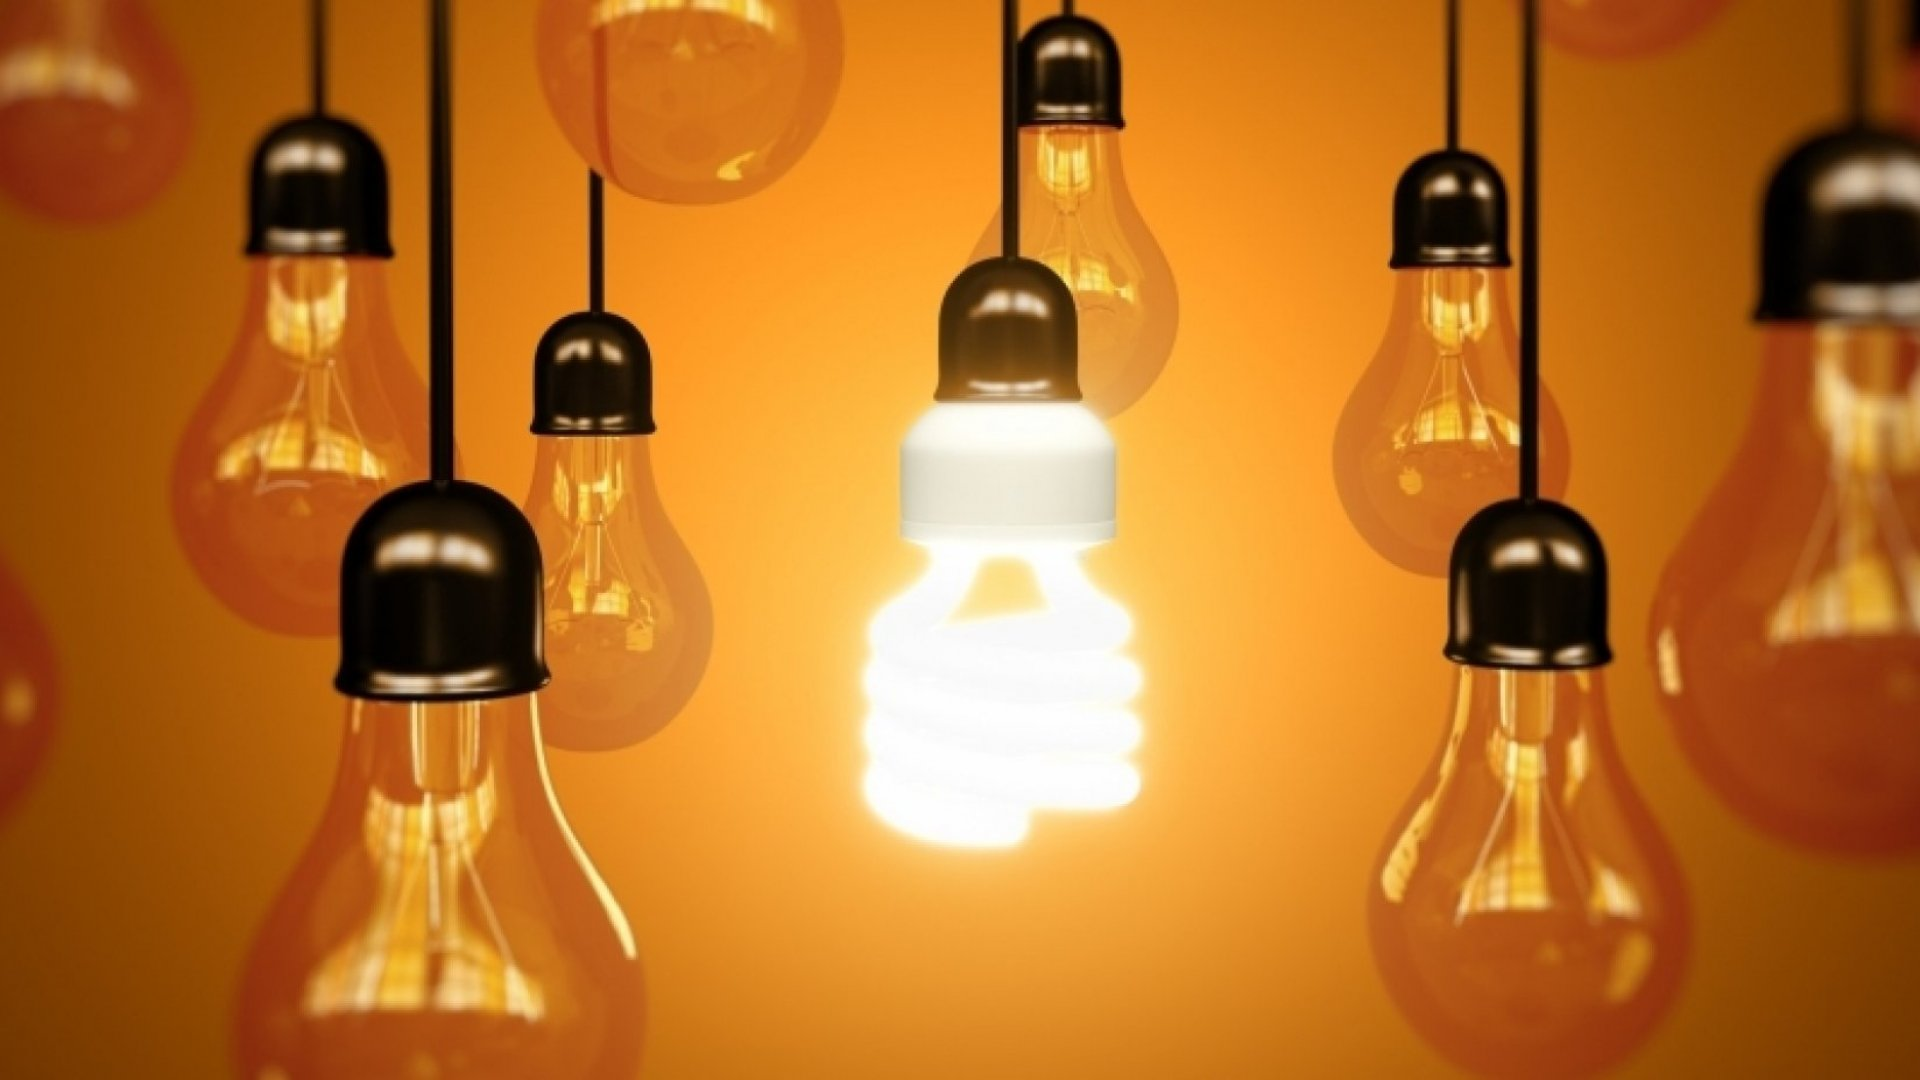 4 Niche Companies With Big Ideas On Innovation